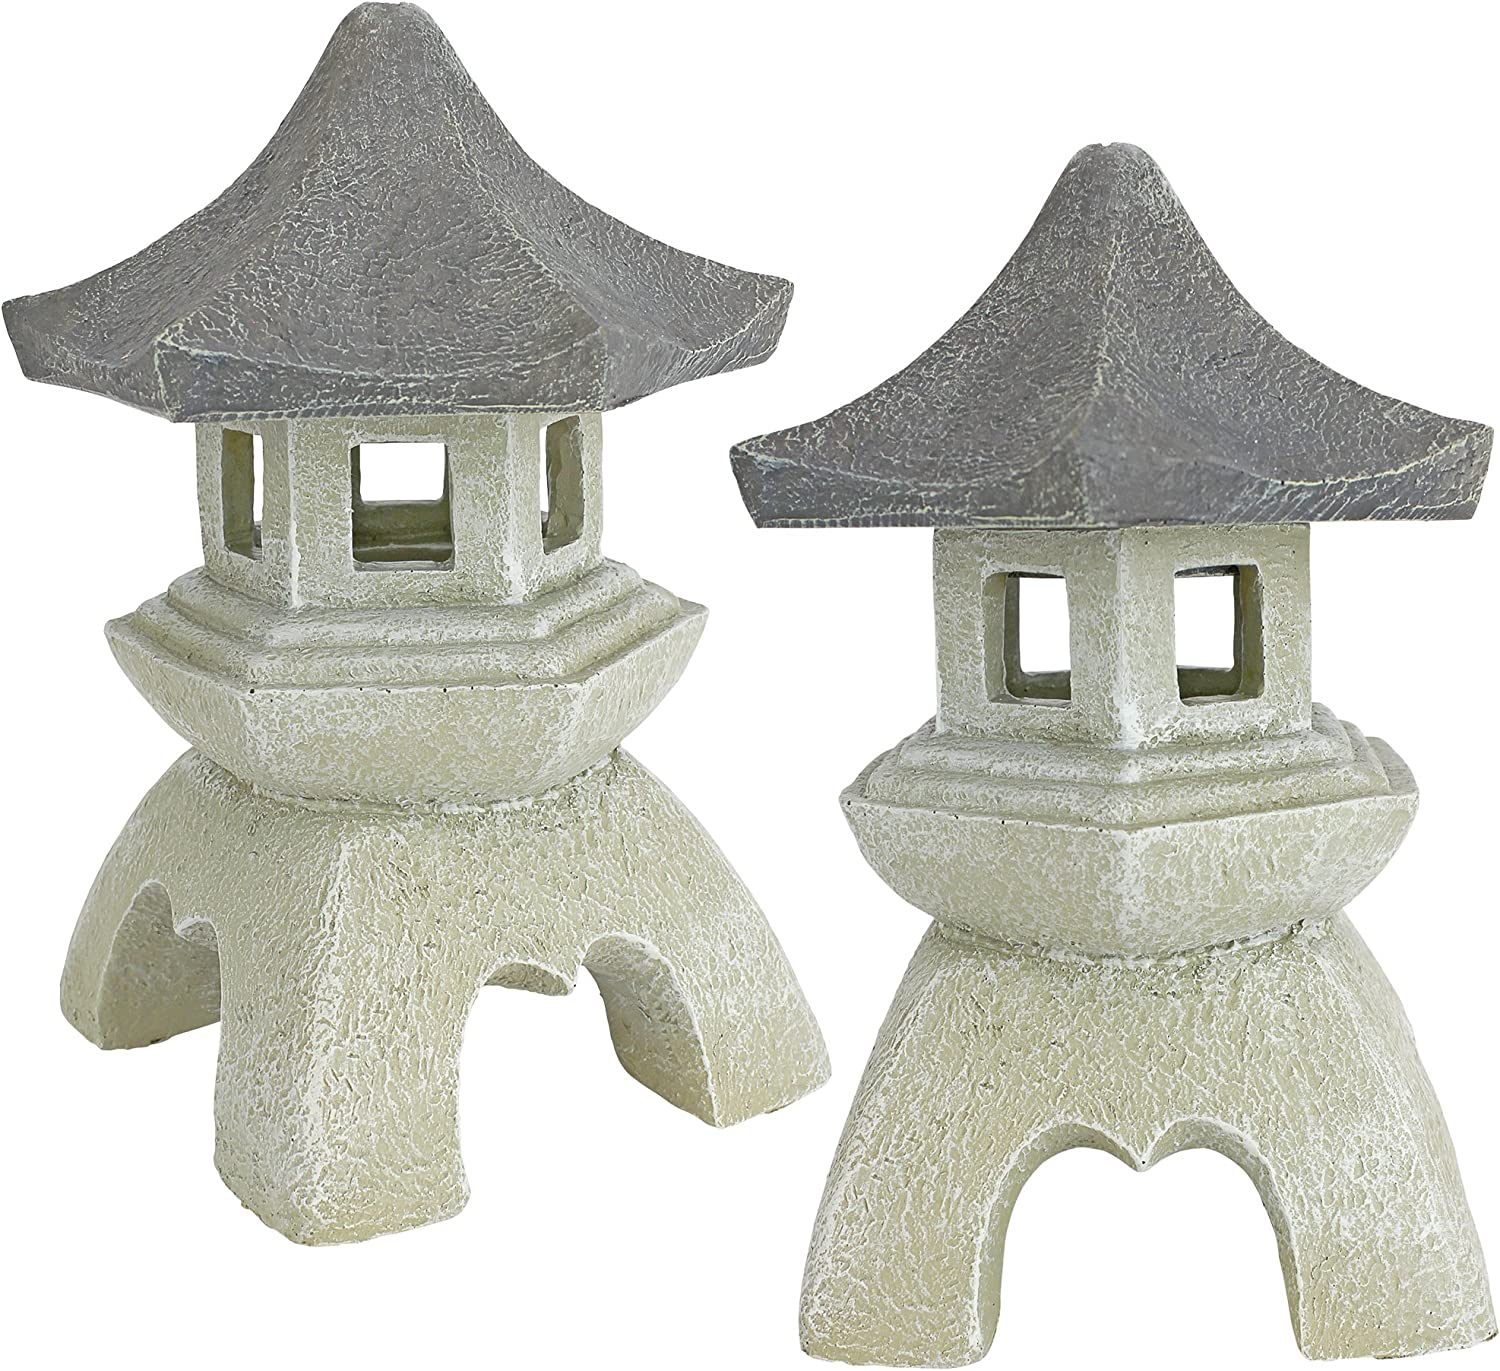 Design Toscano NG729869 Asian Pagoda Statues Medium - Set of Two,two tone stone